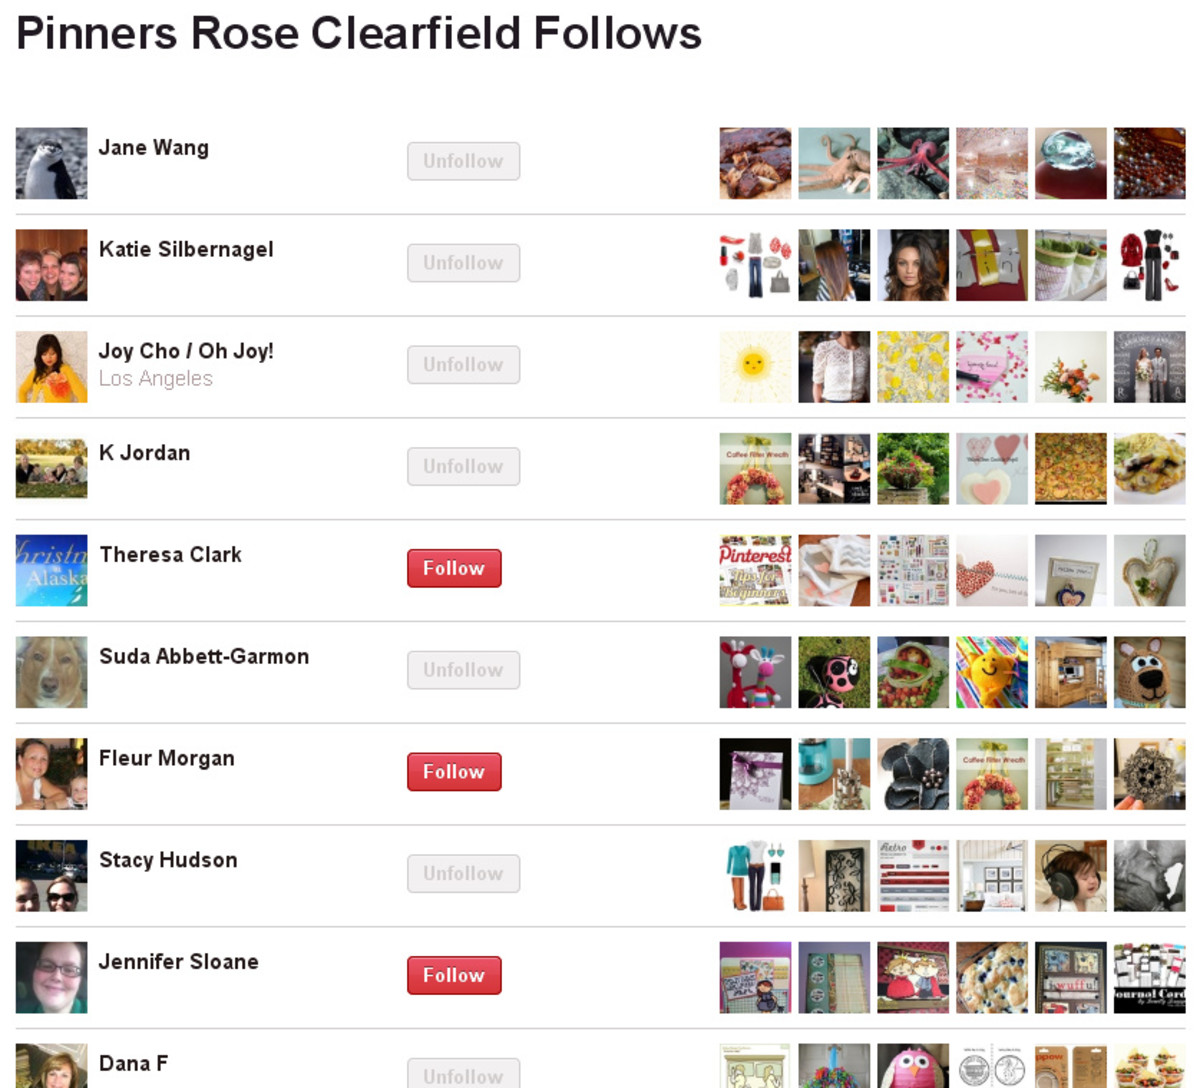 Follow Pintrest users with similar interests, passions, etc. and take the time to interact with them to build meaningful relationships.